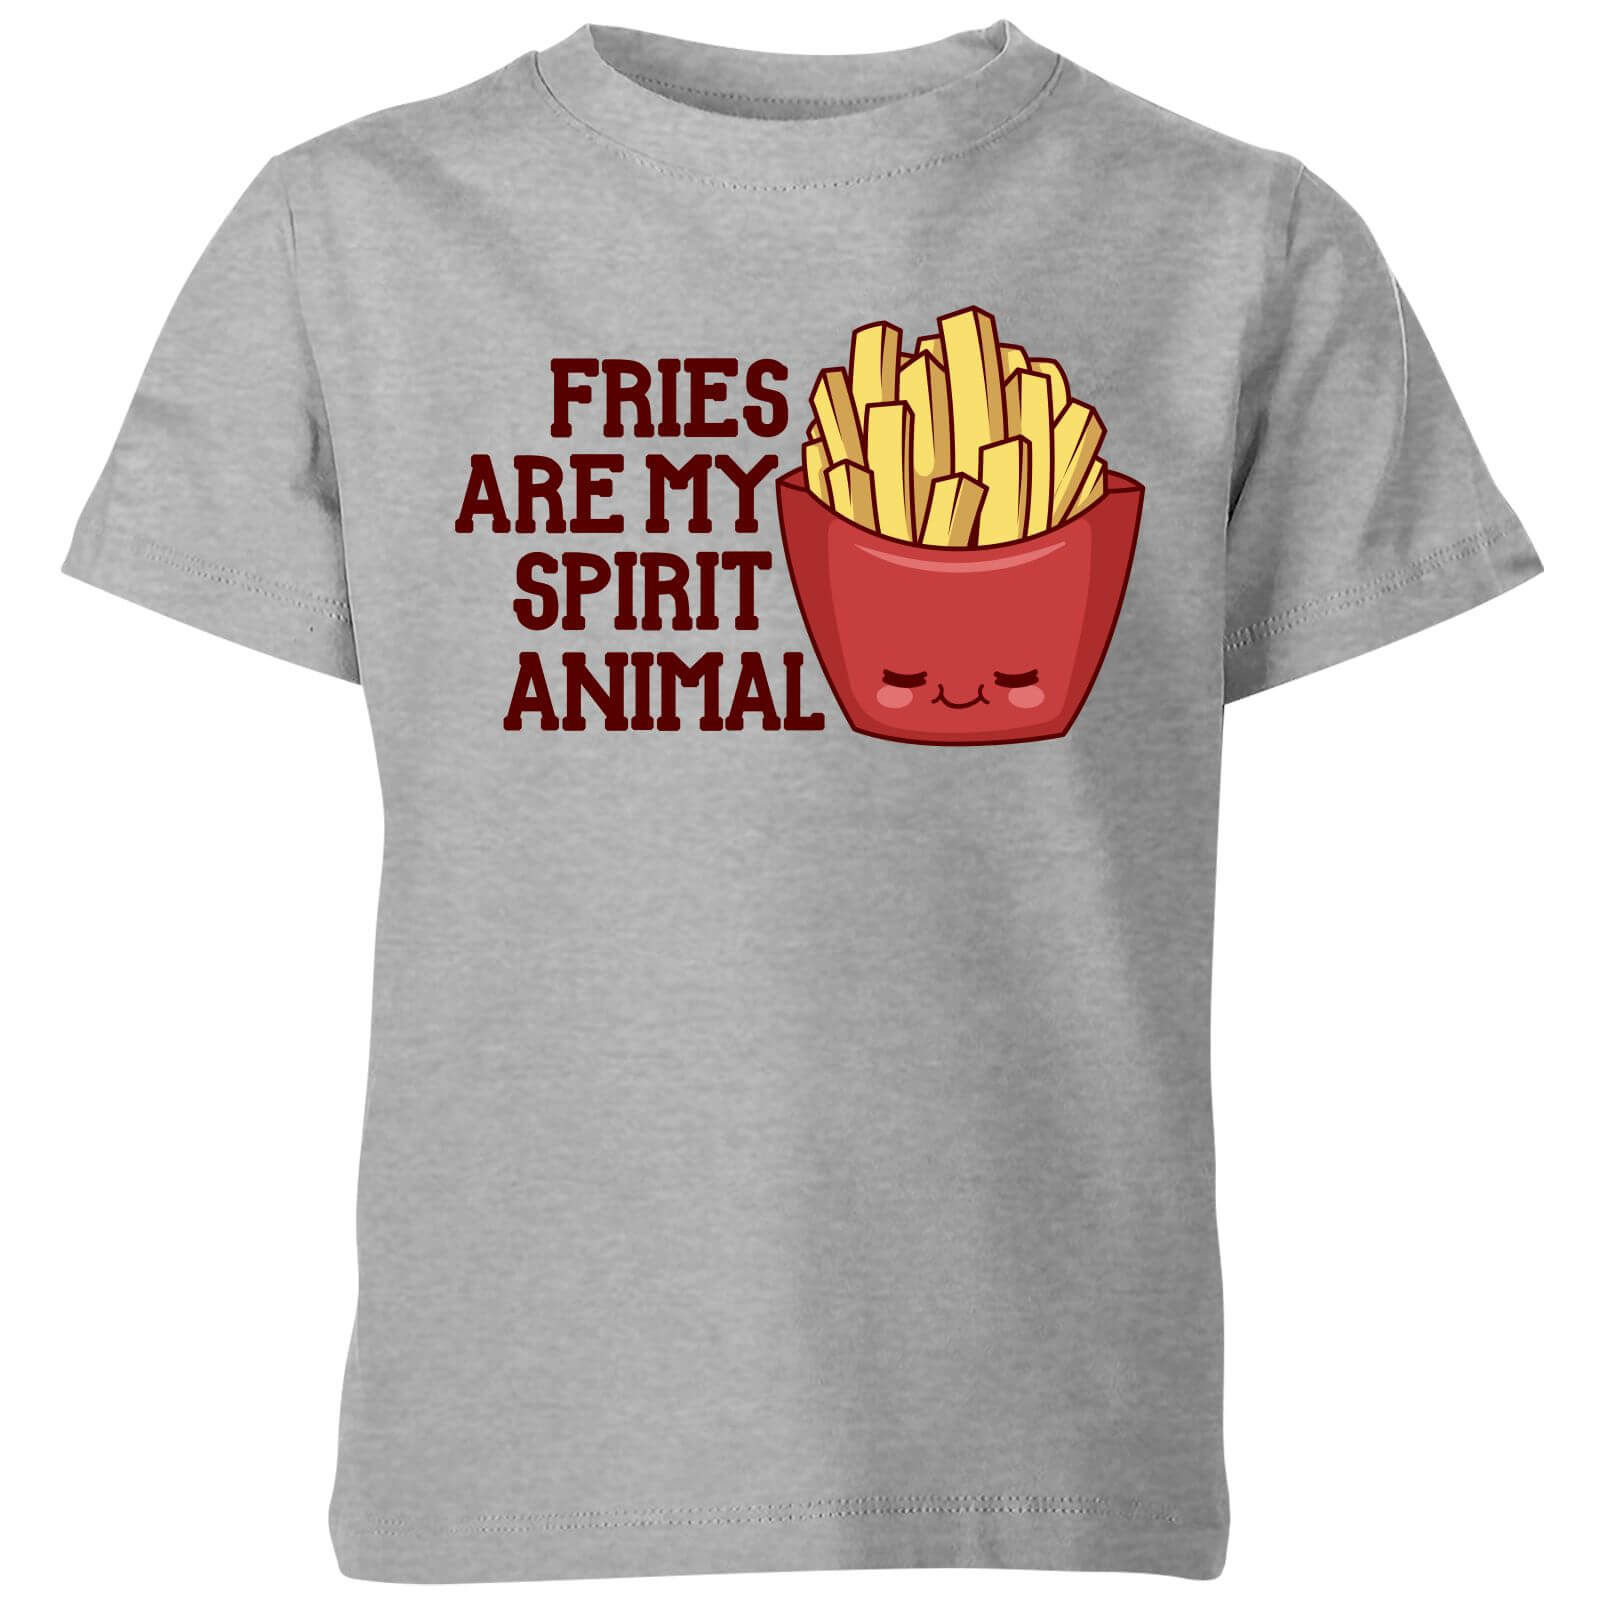 Fries Are My Spirit Animal Kids T-Shirt - Grey